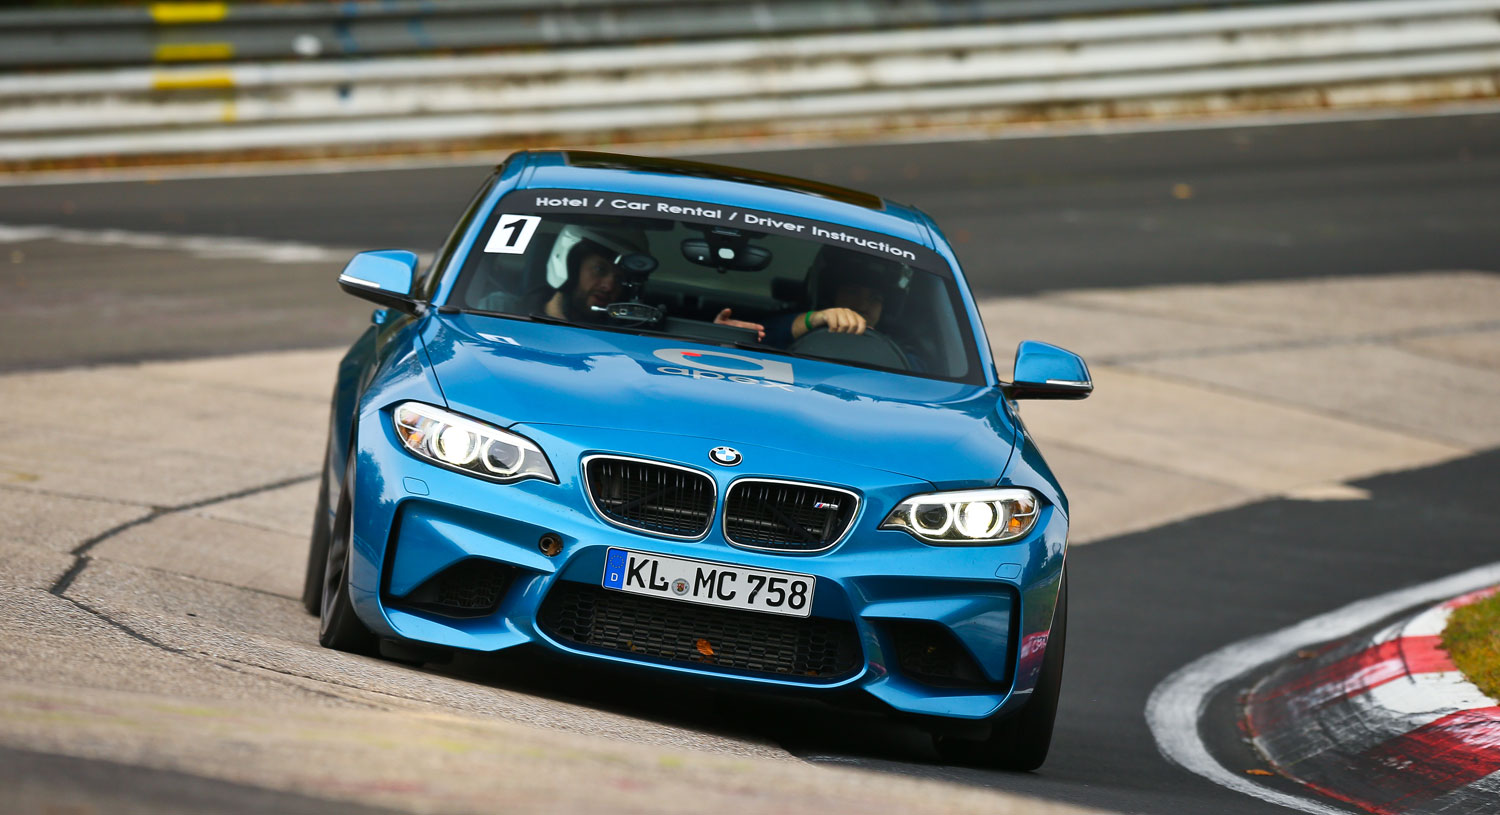 Apex track days at the Nürburgring are like no other. Come and experience this great event!